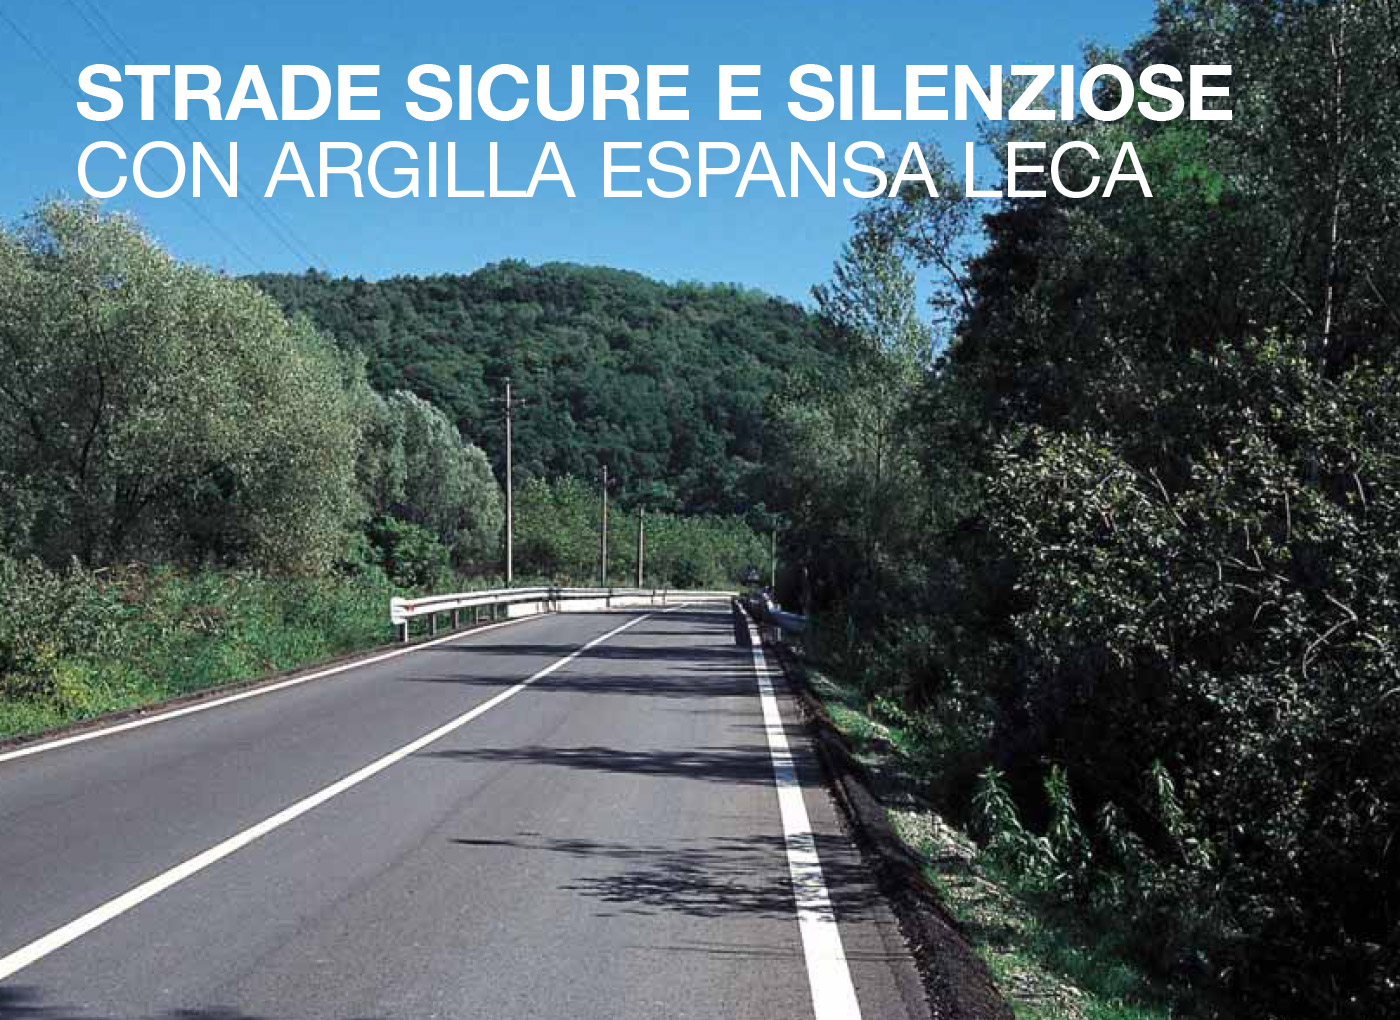 manuale-strade